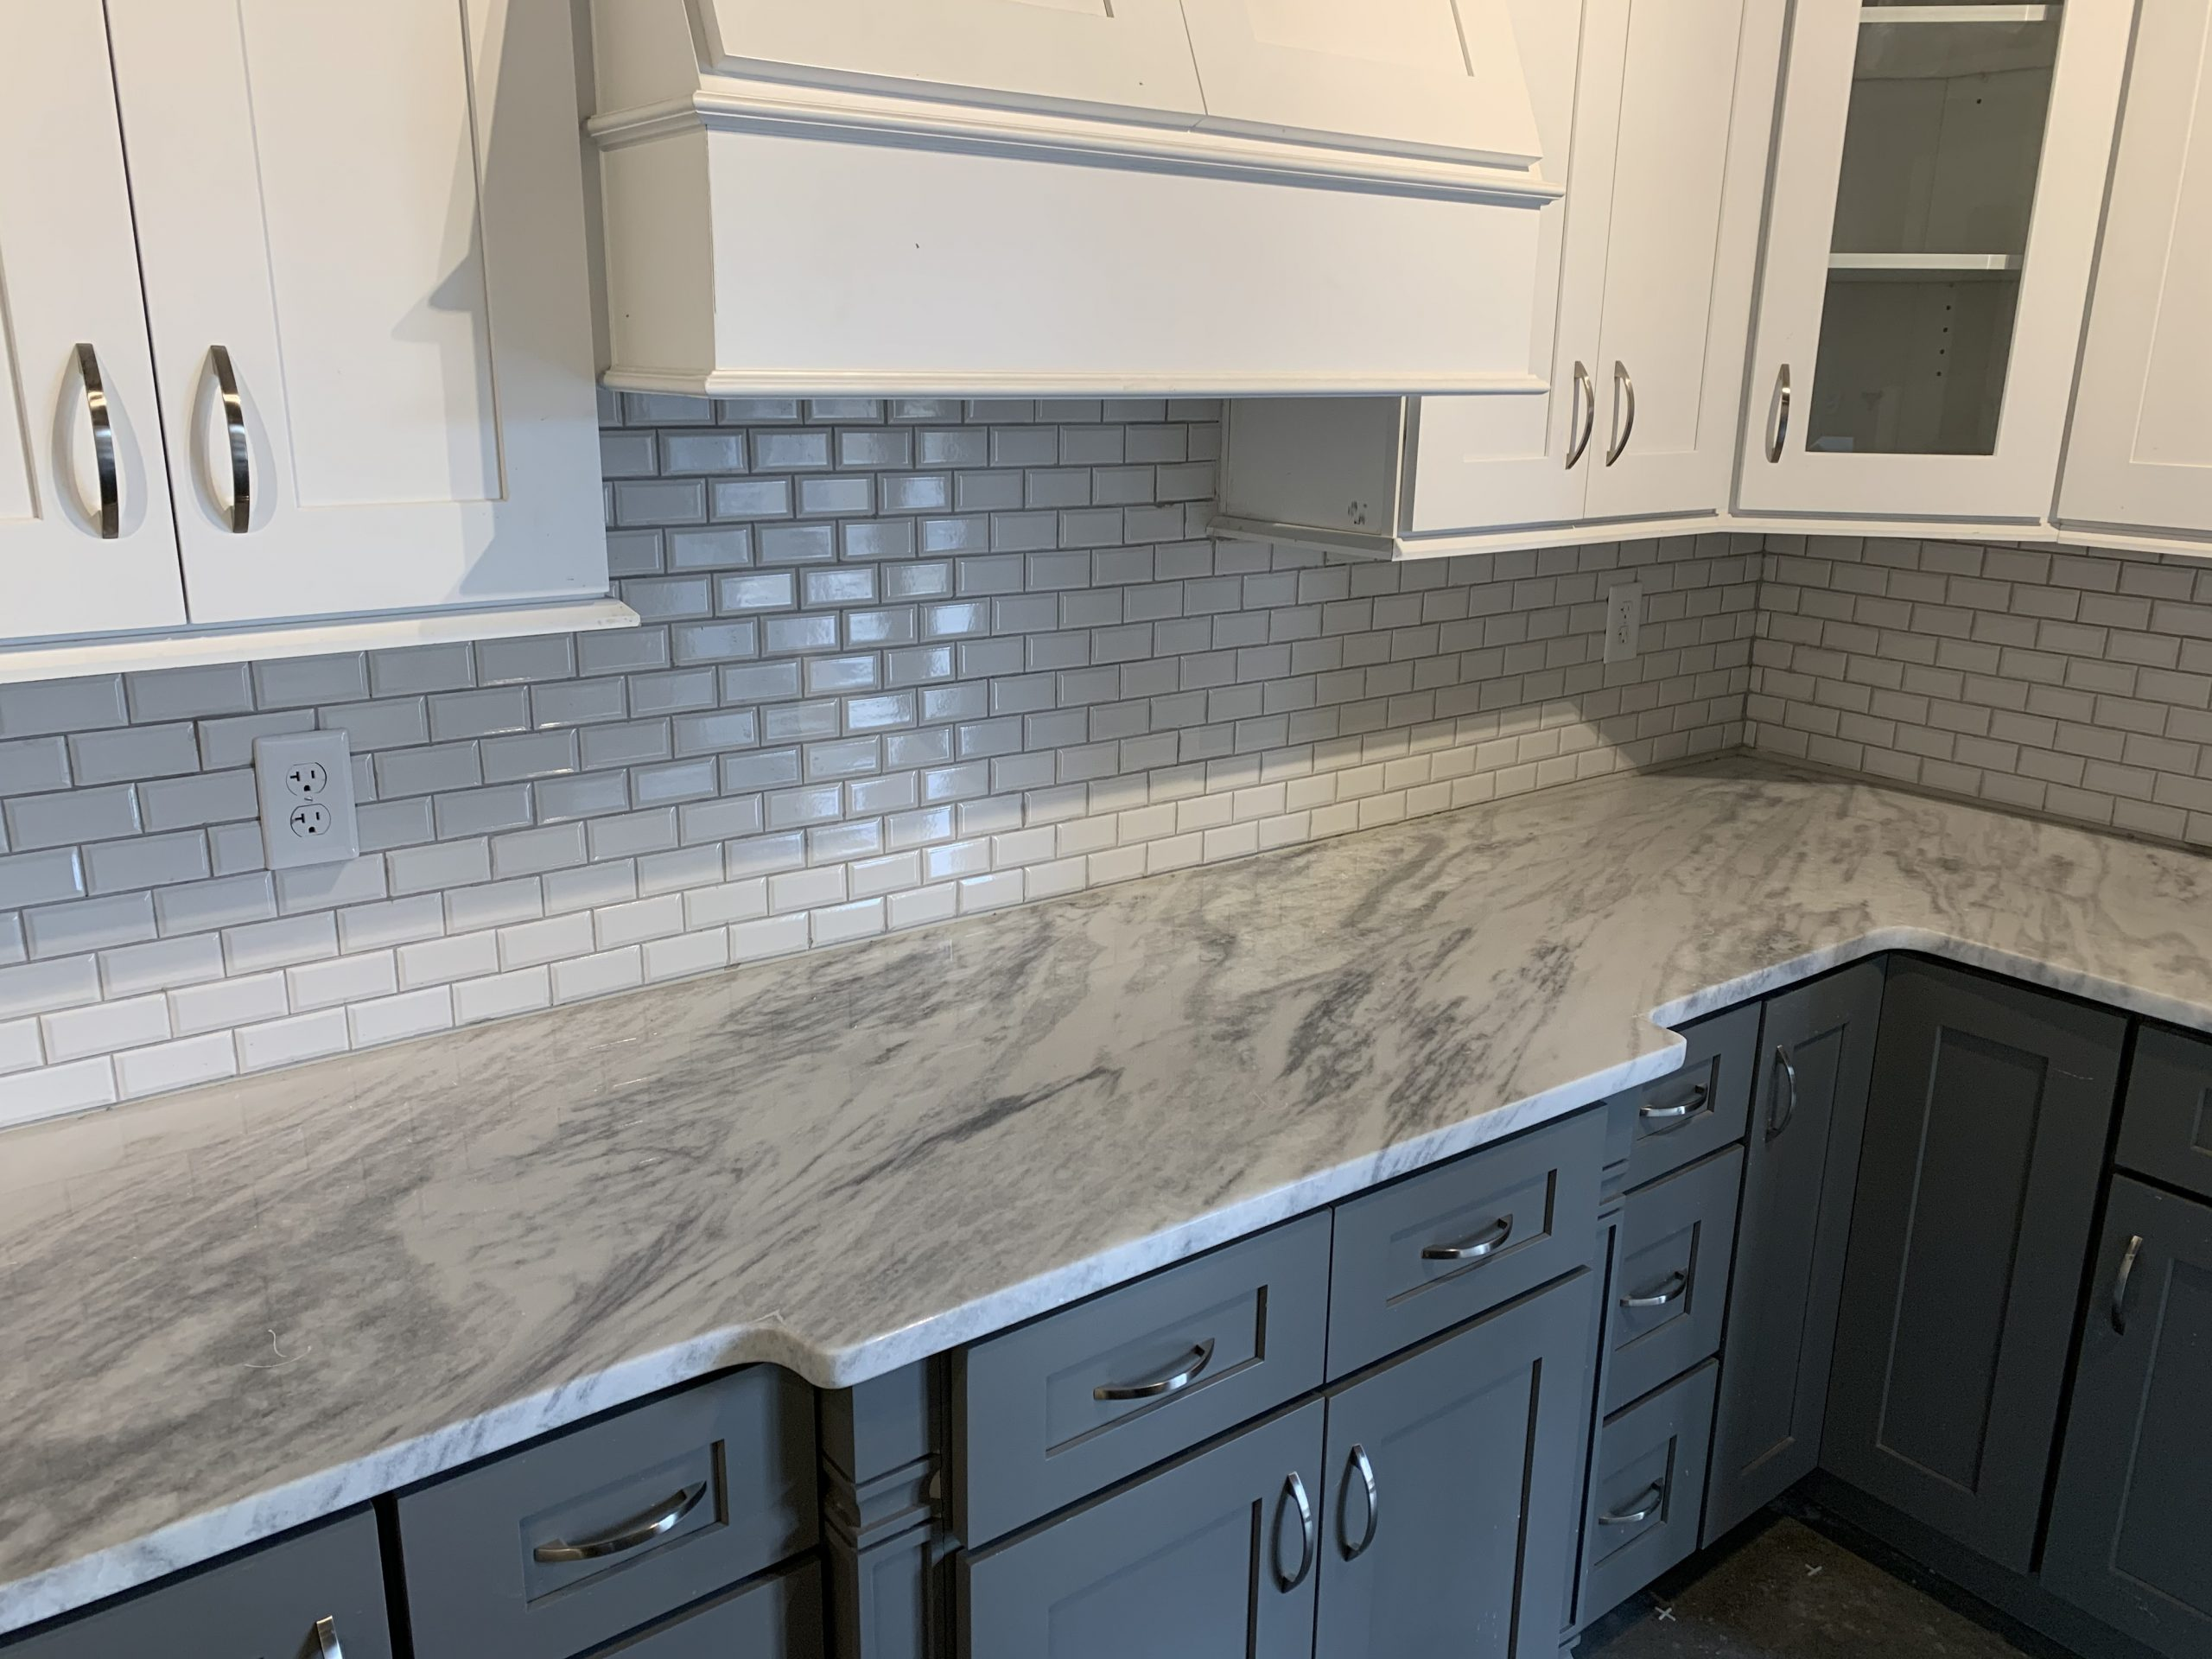 Types of Countertops - Mont Blanc Marble Countertop